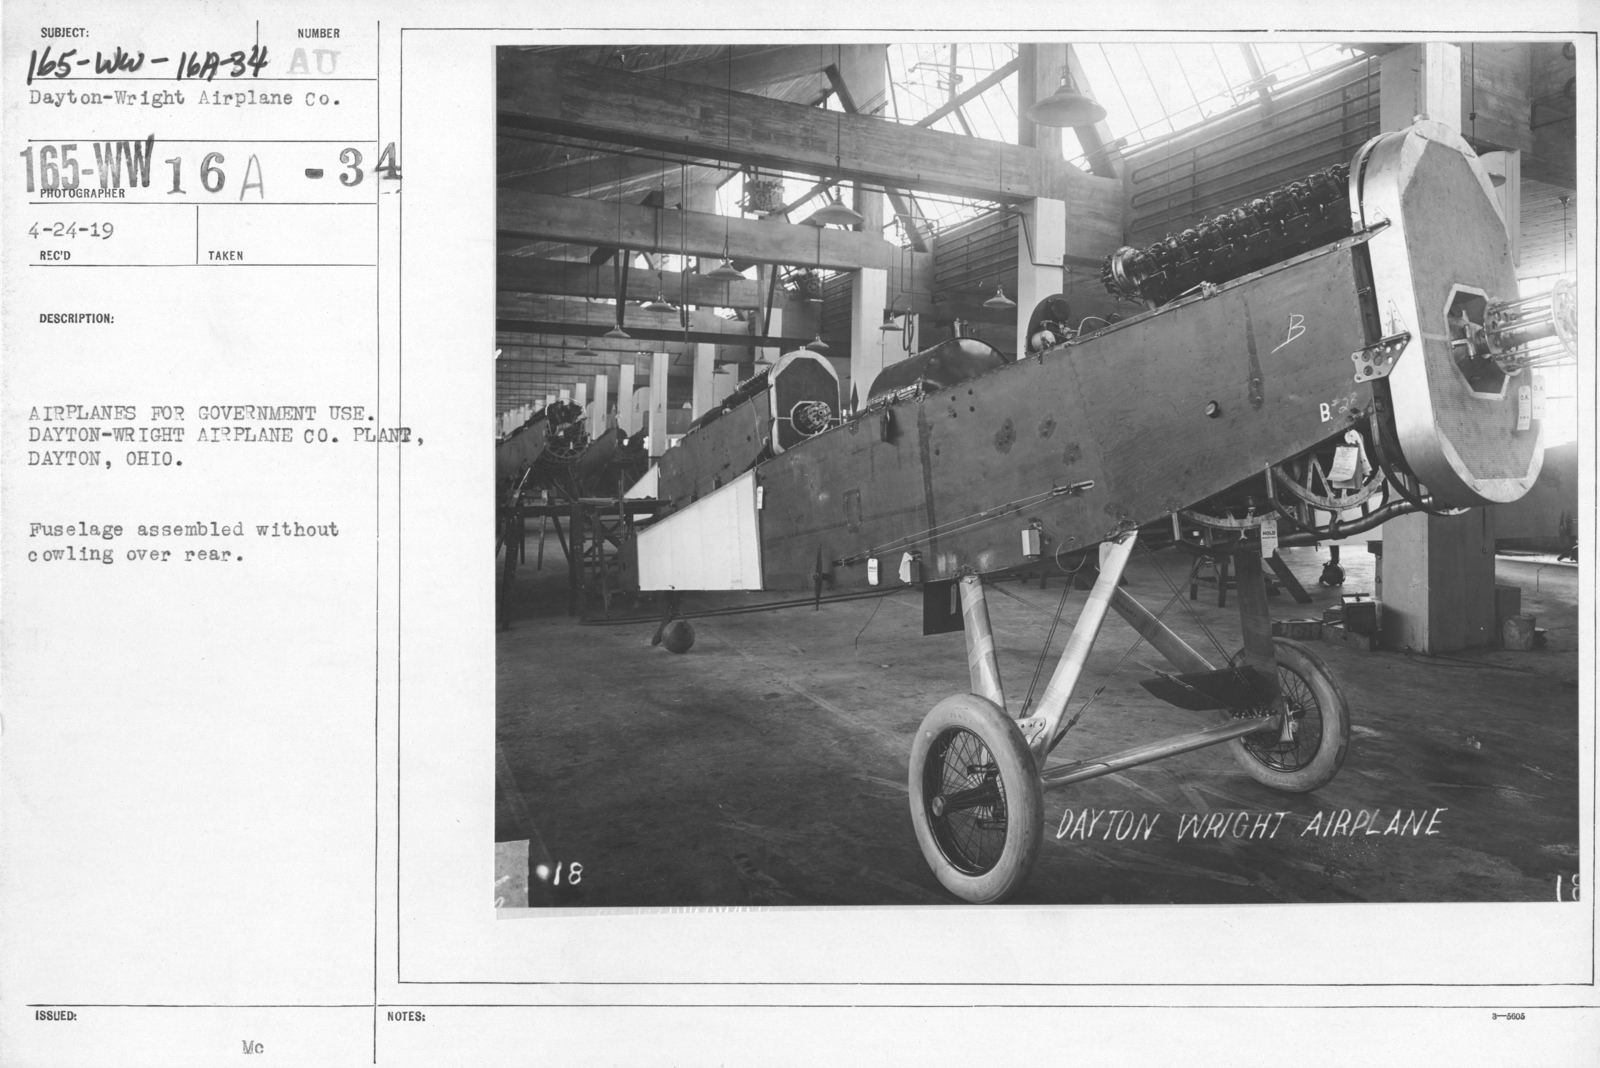 Airplanes - Parts - Airplanes for government use. Dayton-Wright Airplane Co. Plant, Dayton, Ohio. Fuselage assembled without cowling over rear